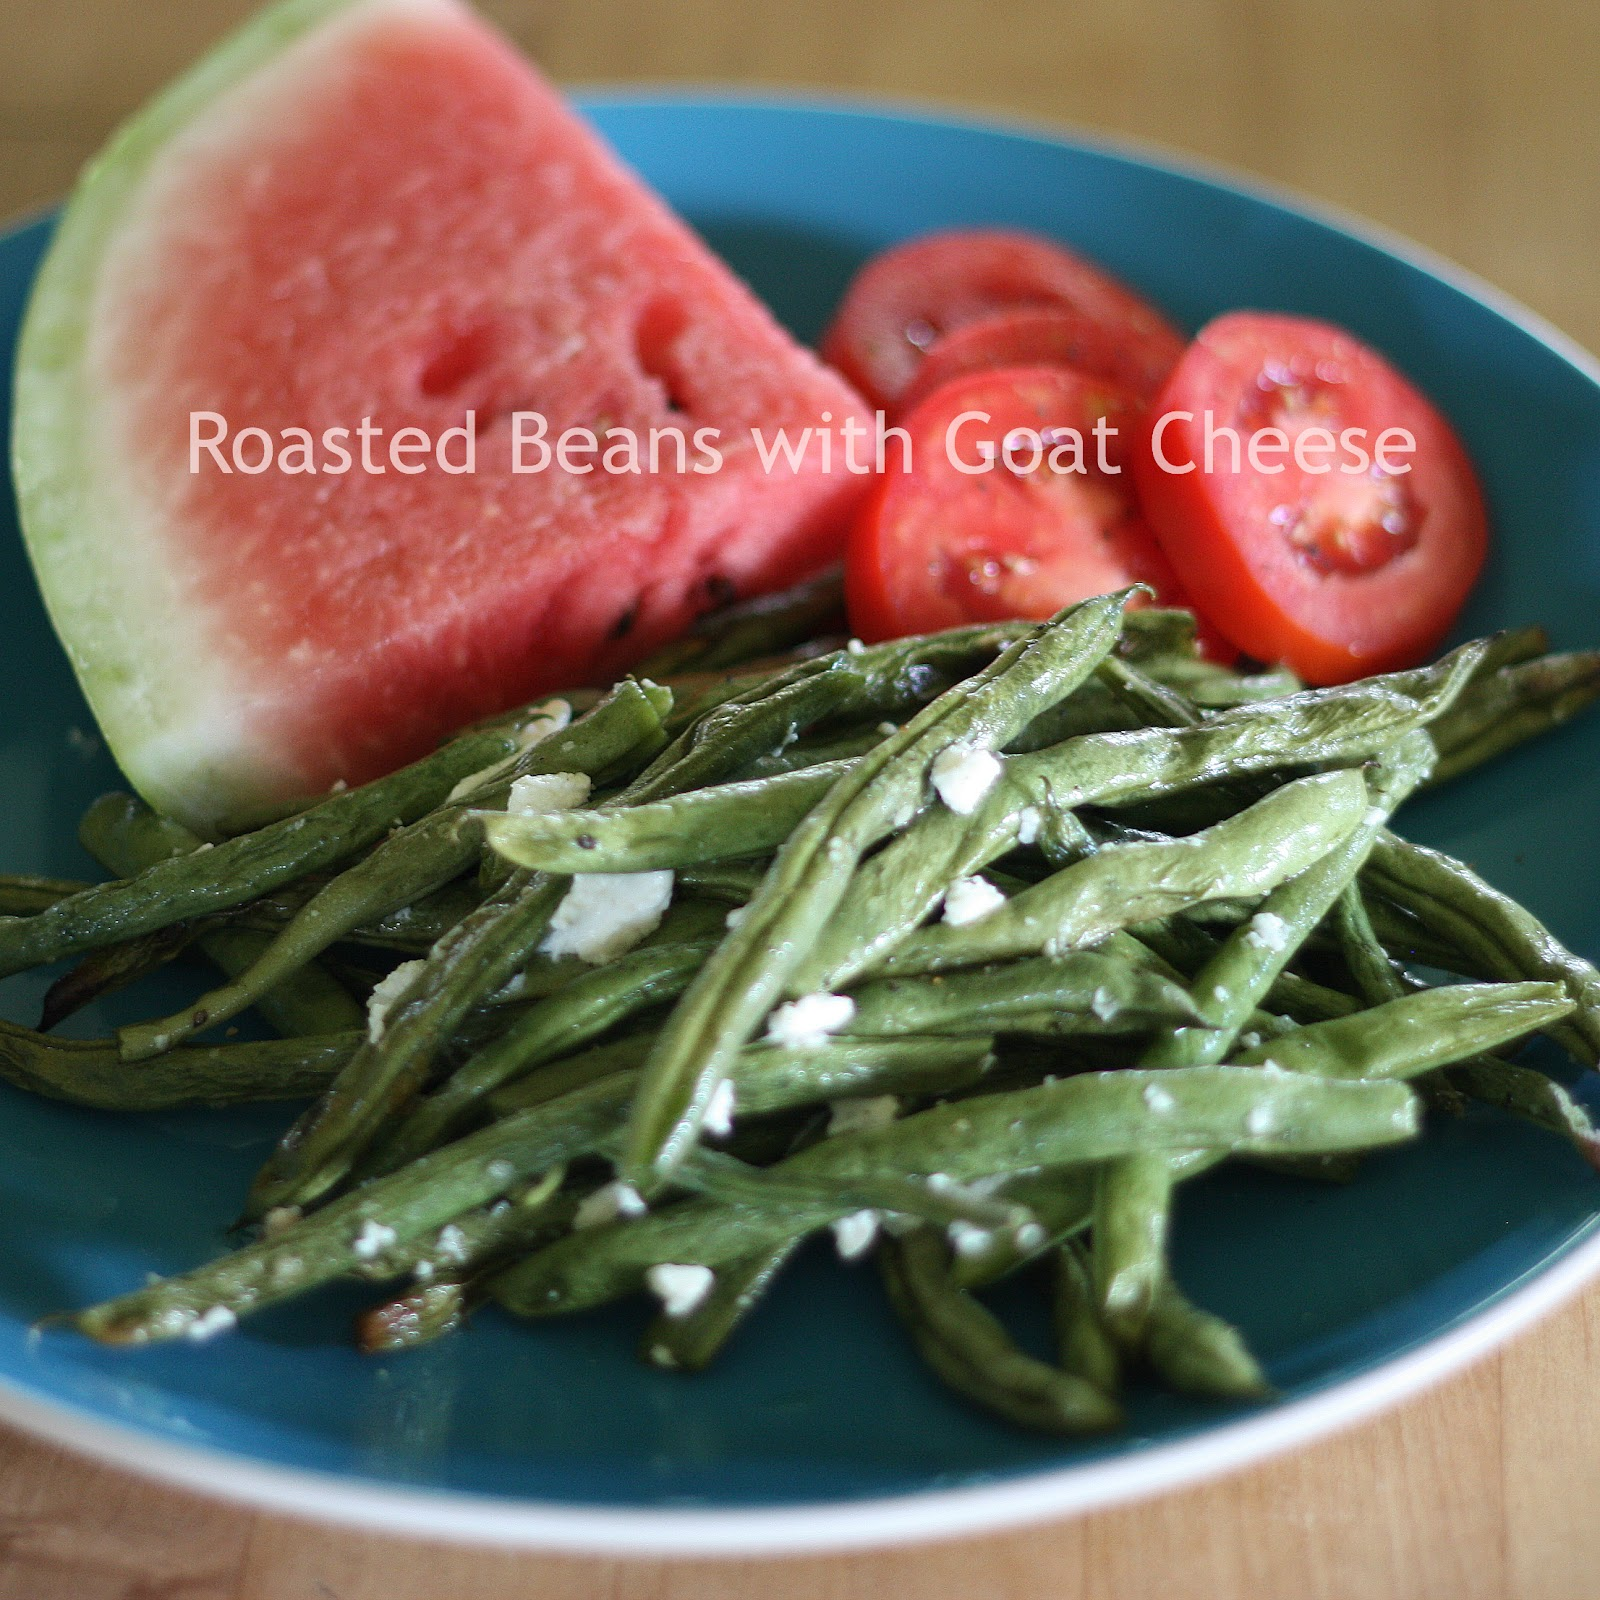 Clawson Live: Roasted Green Beans with Goat Cheese